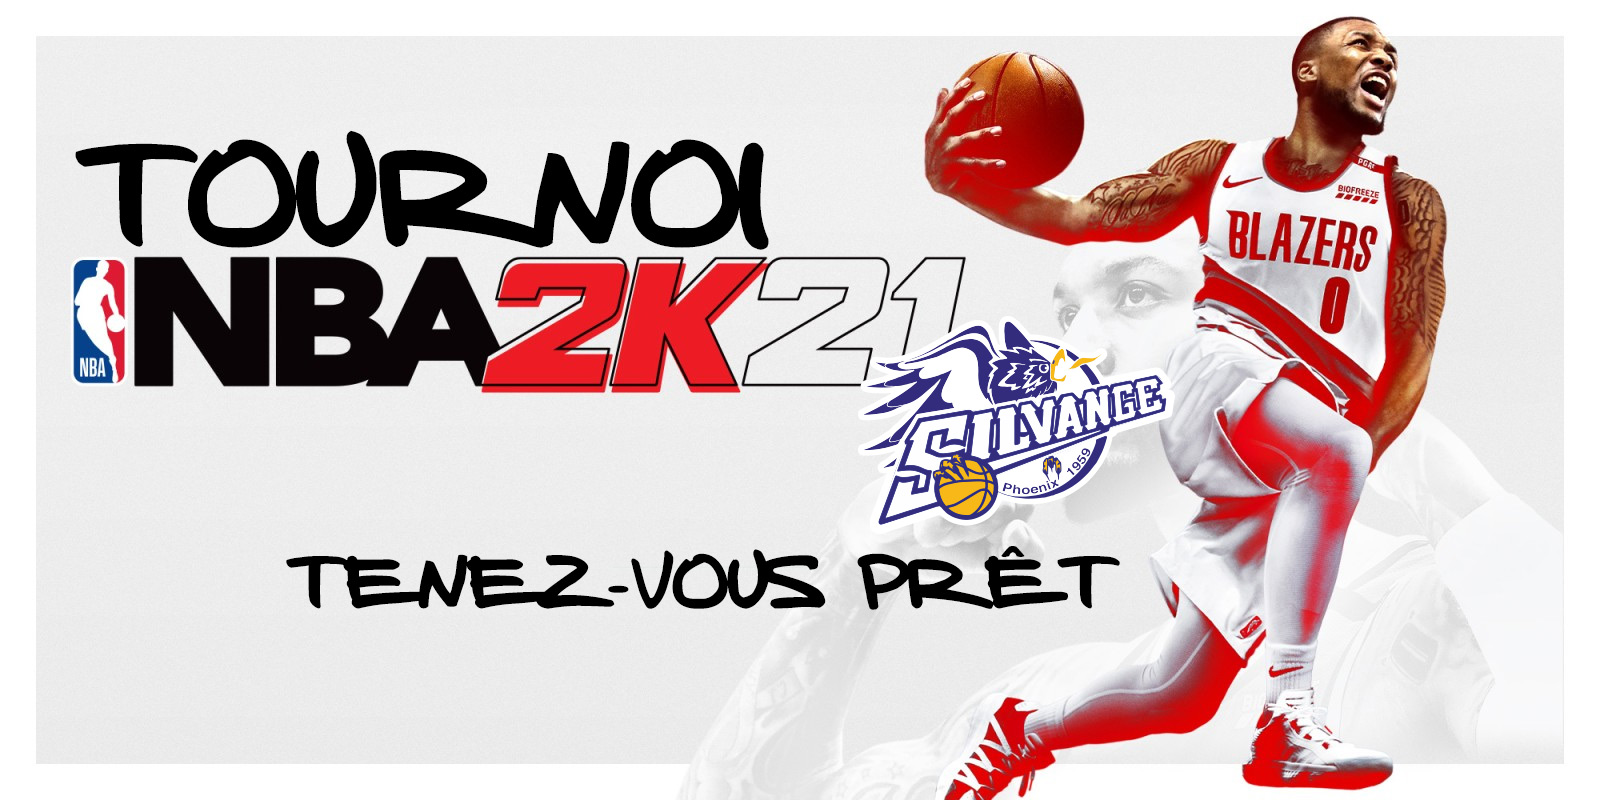 Tournoi NBA 2K